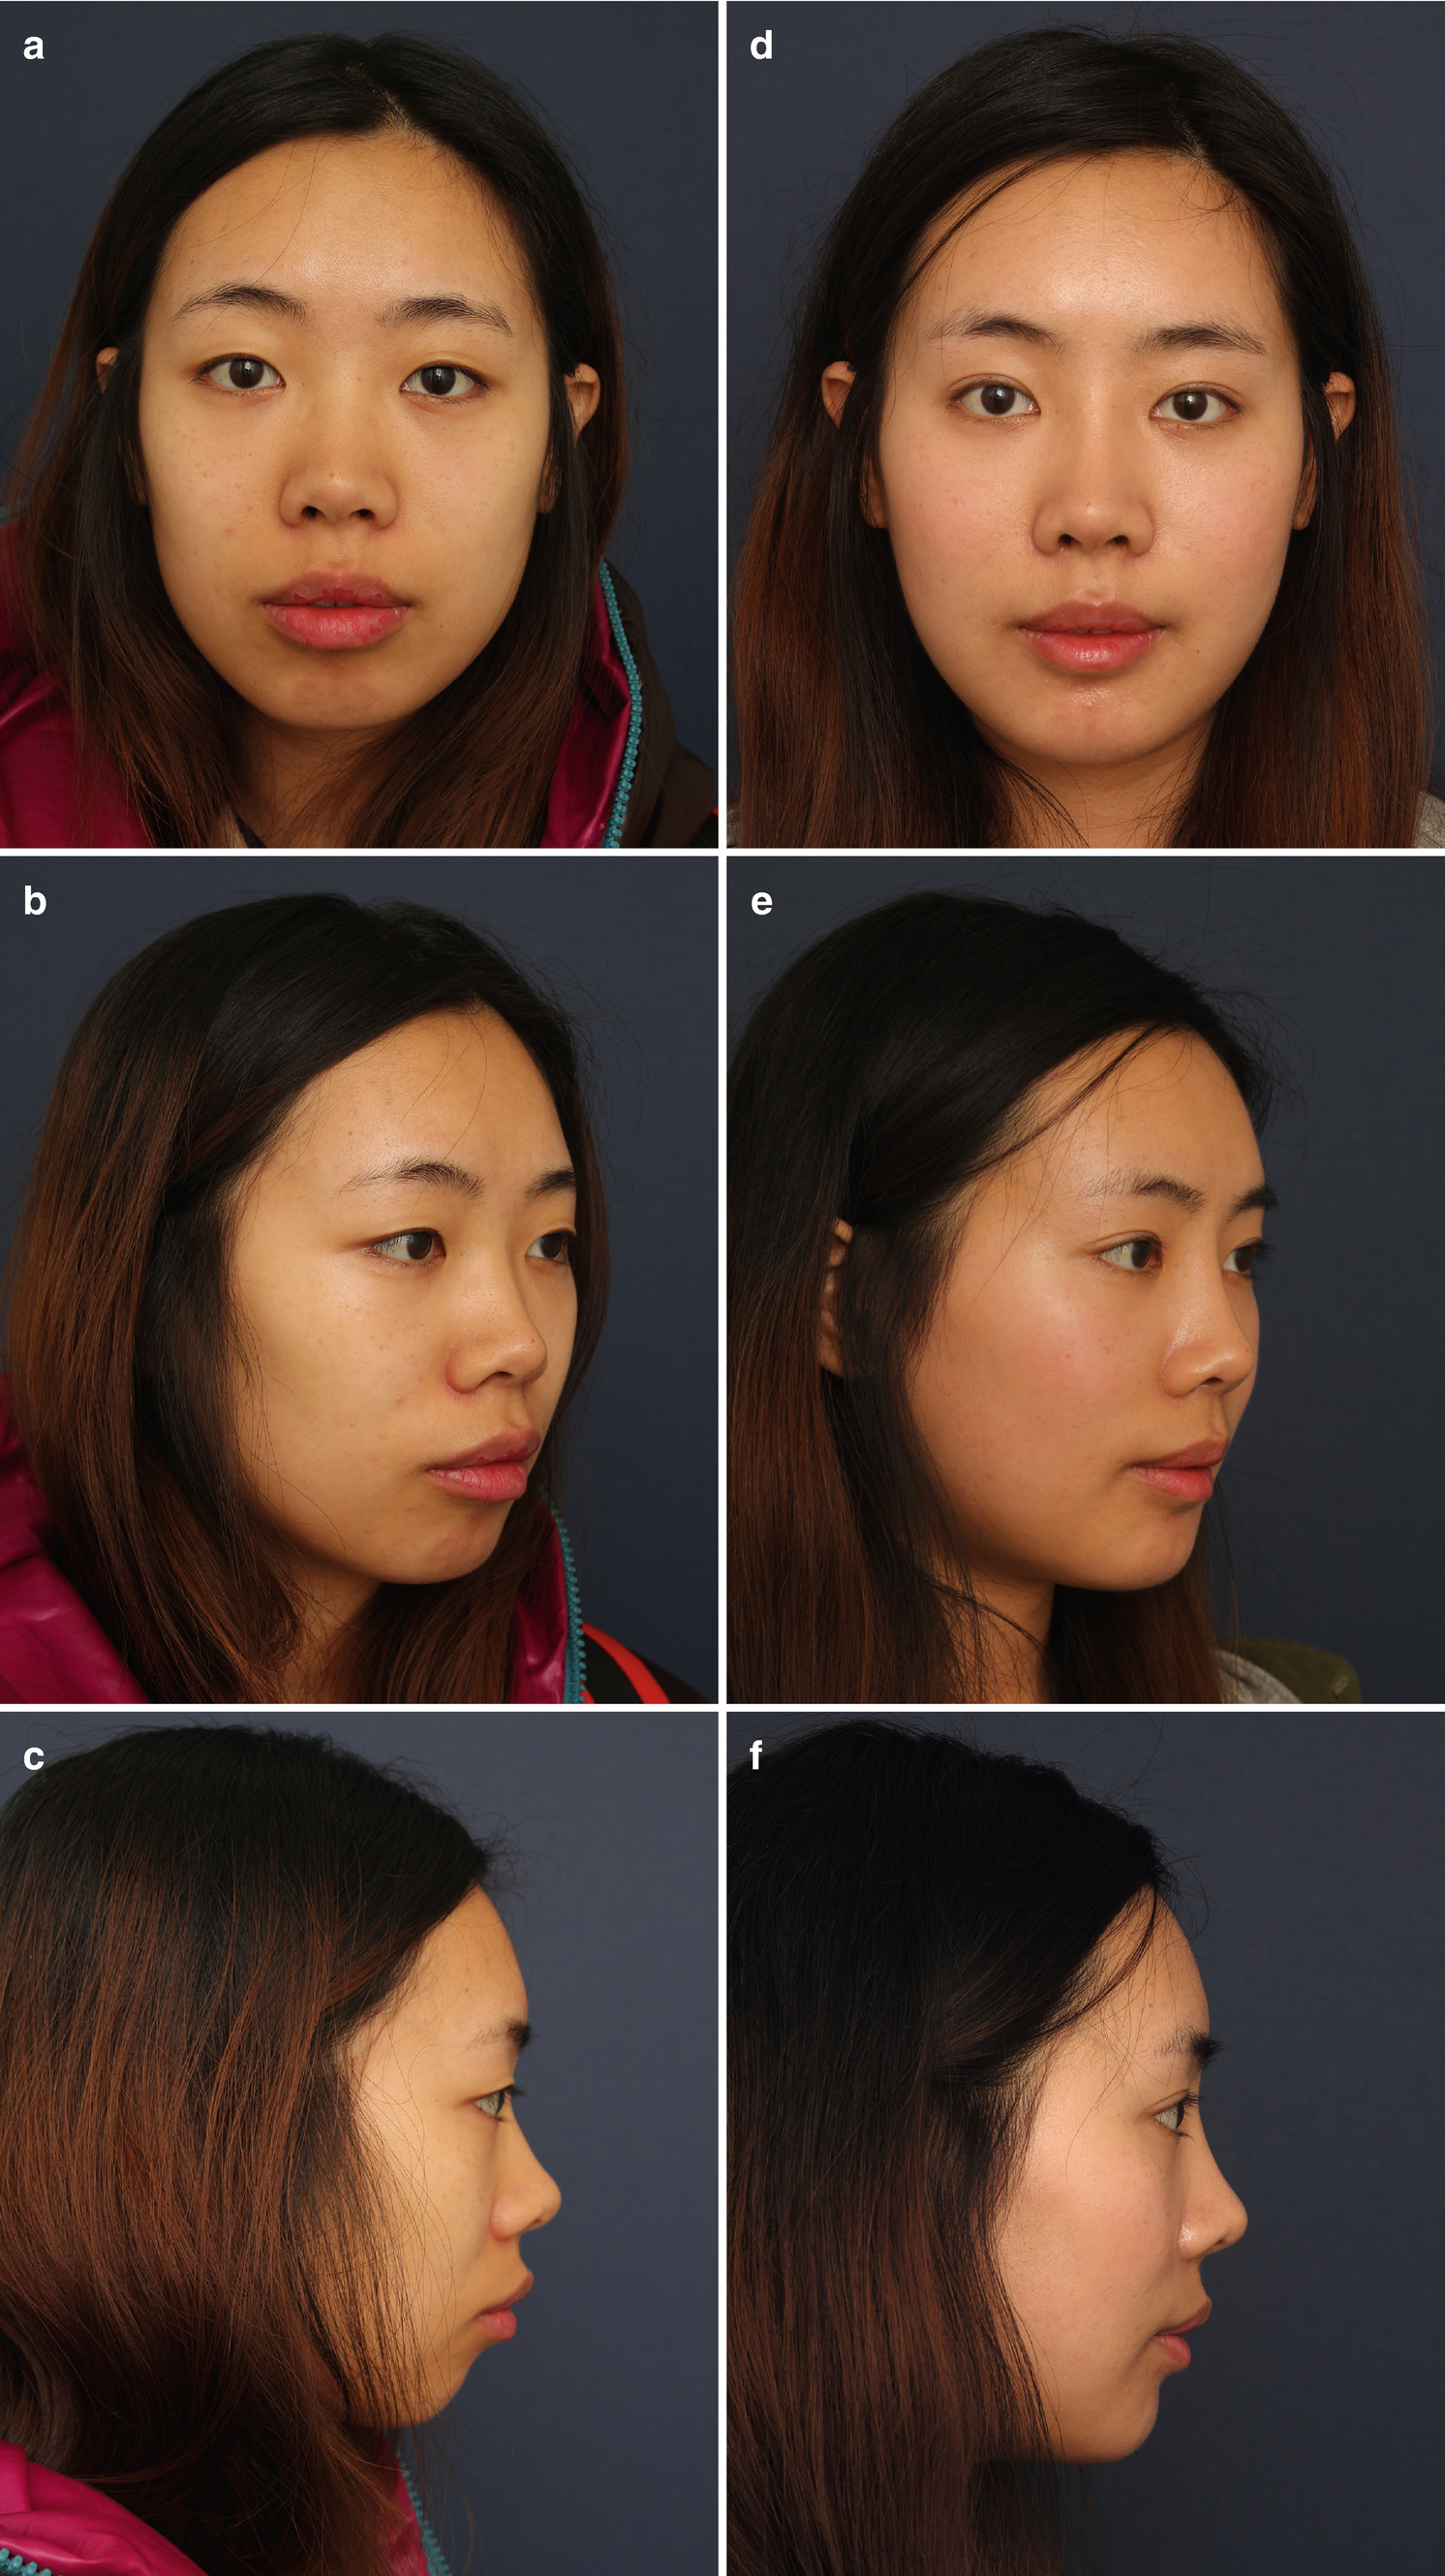 Preoperative Evaluation for Rhinoplasty | SpringerLink